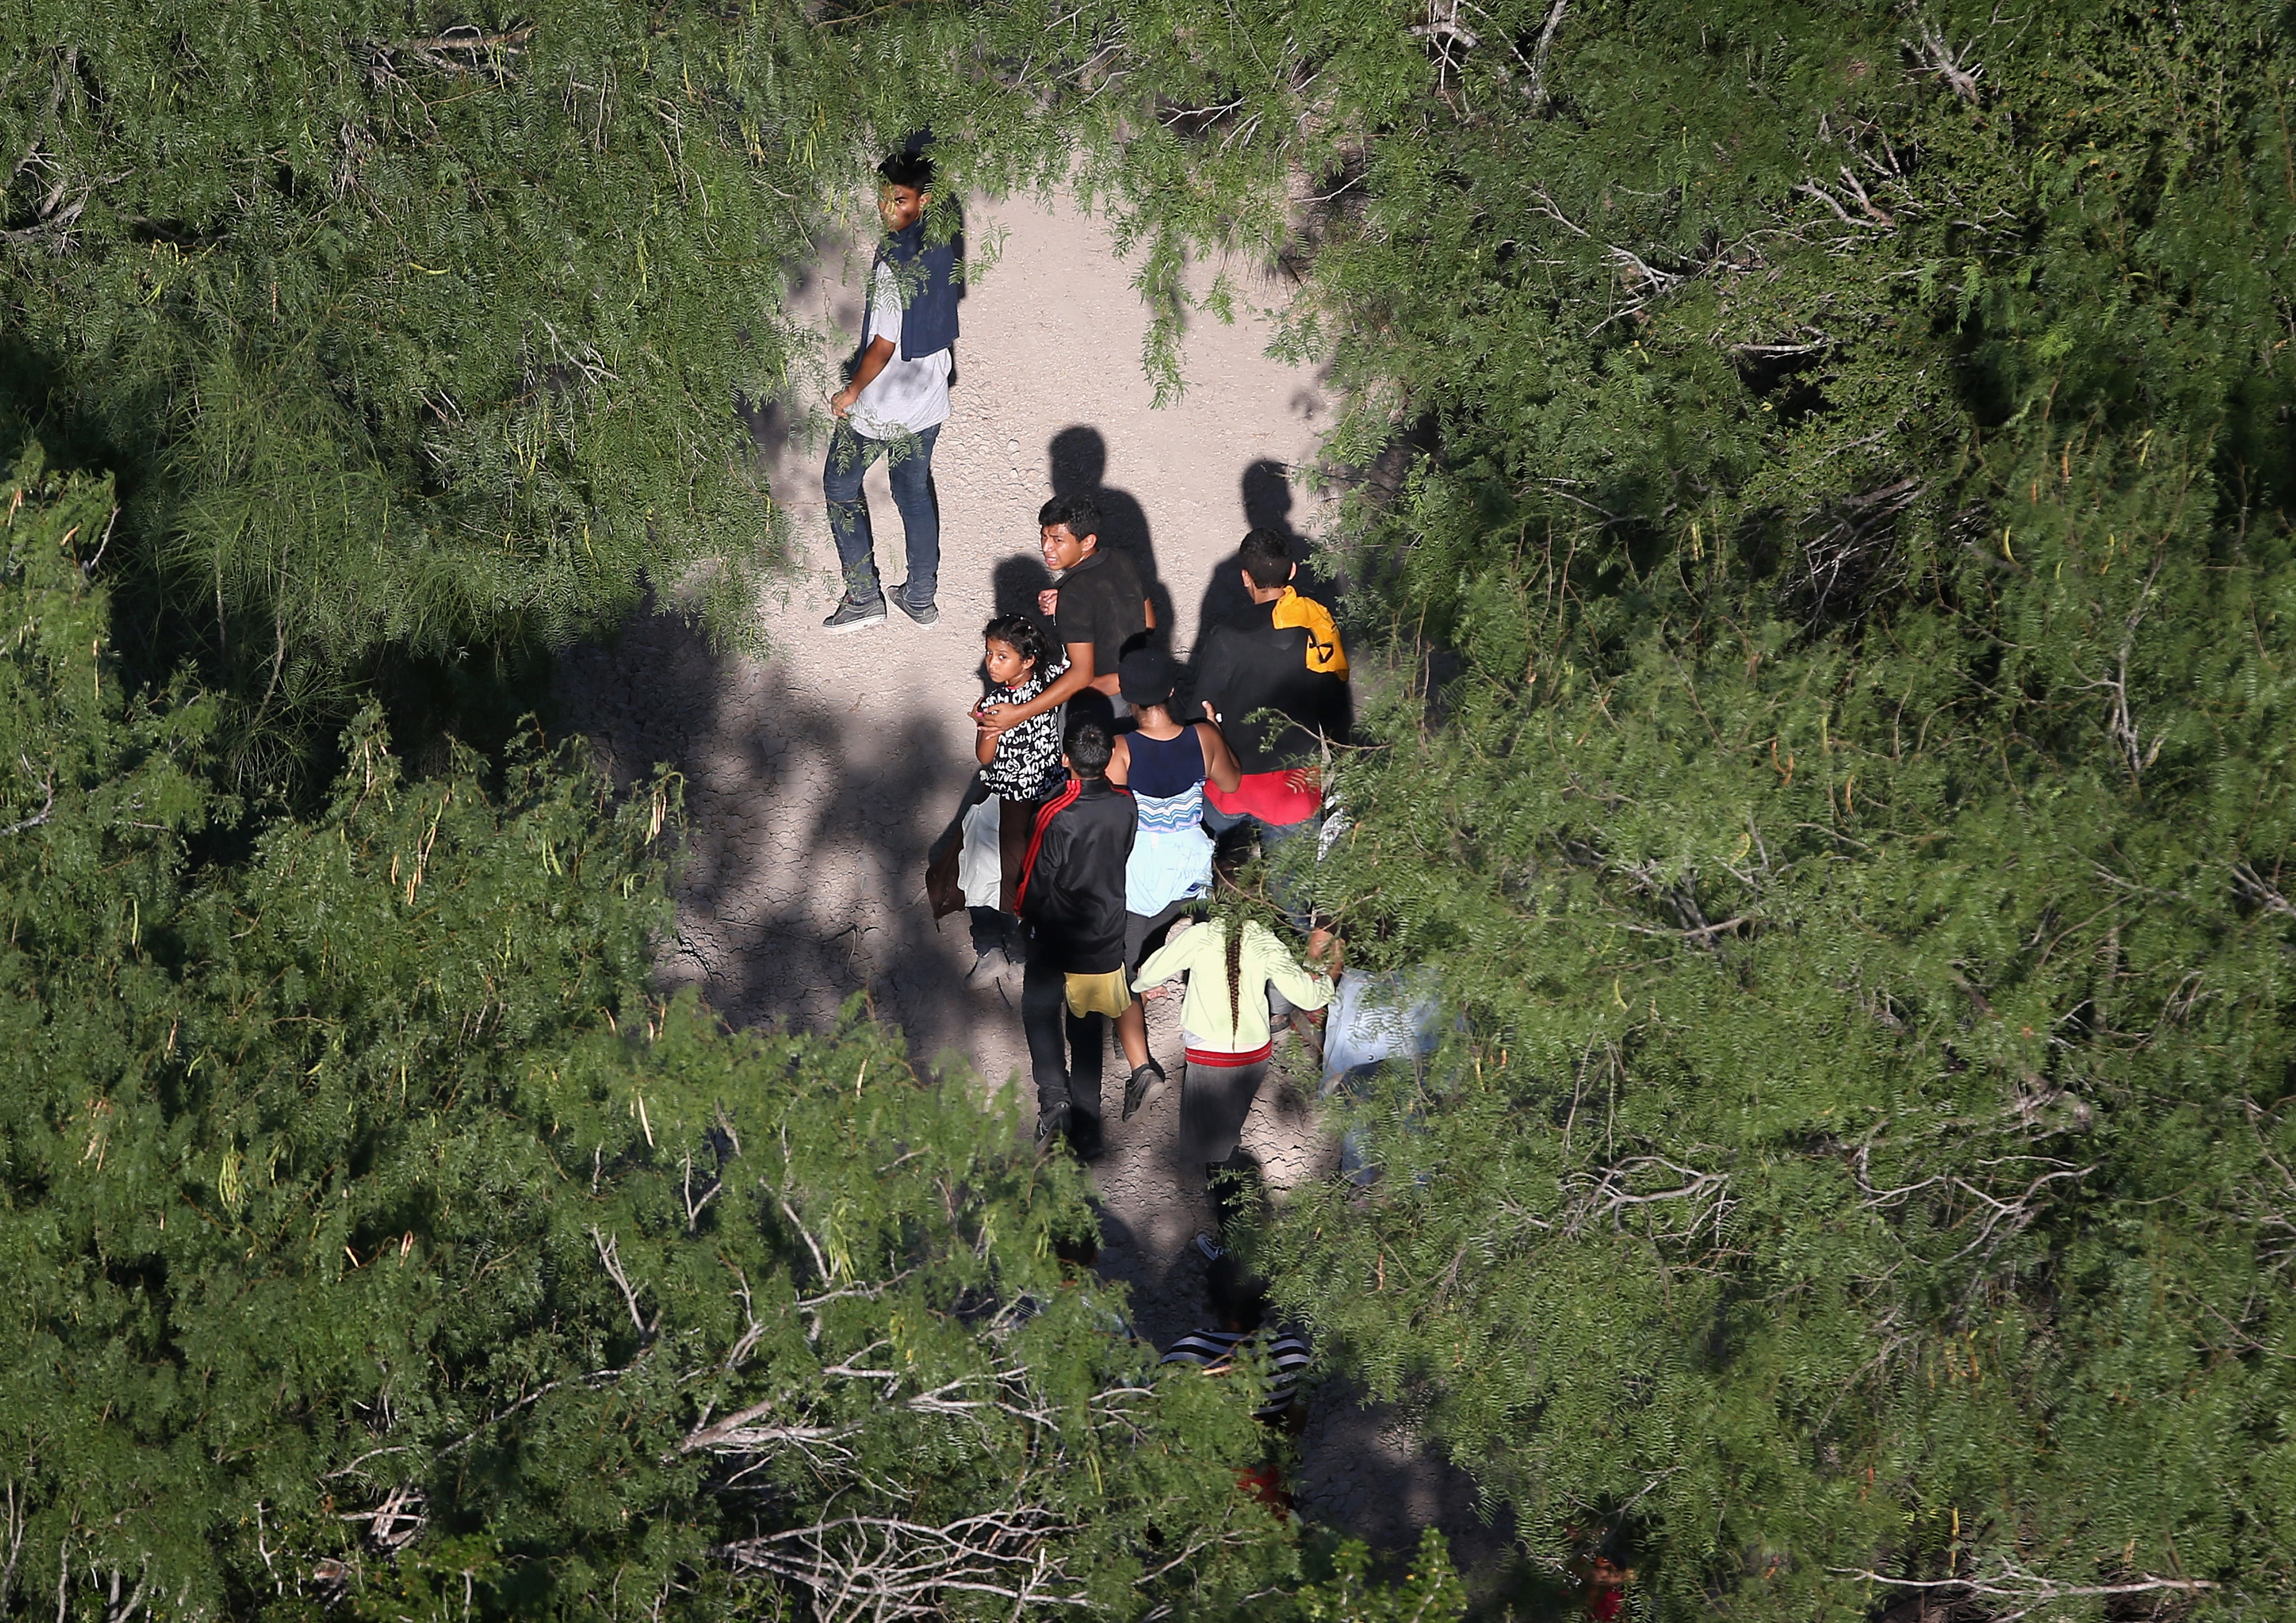 Undocumented immigrant families walk before being taken into custody by Border Patrol agents near McAllen, Texas on July 21, 2014.